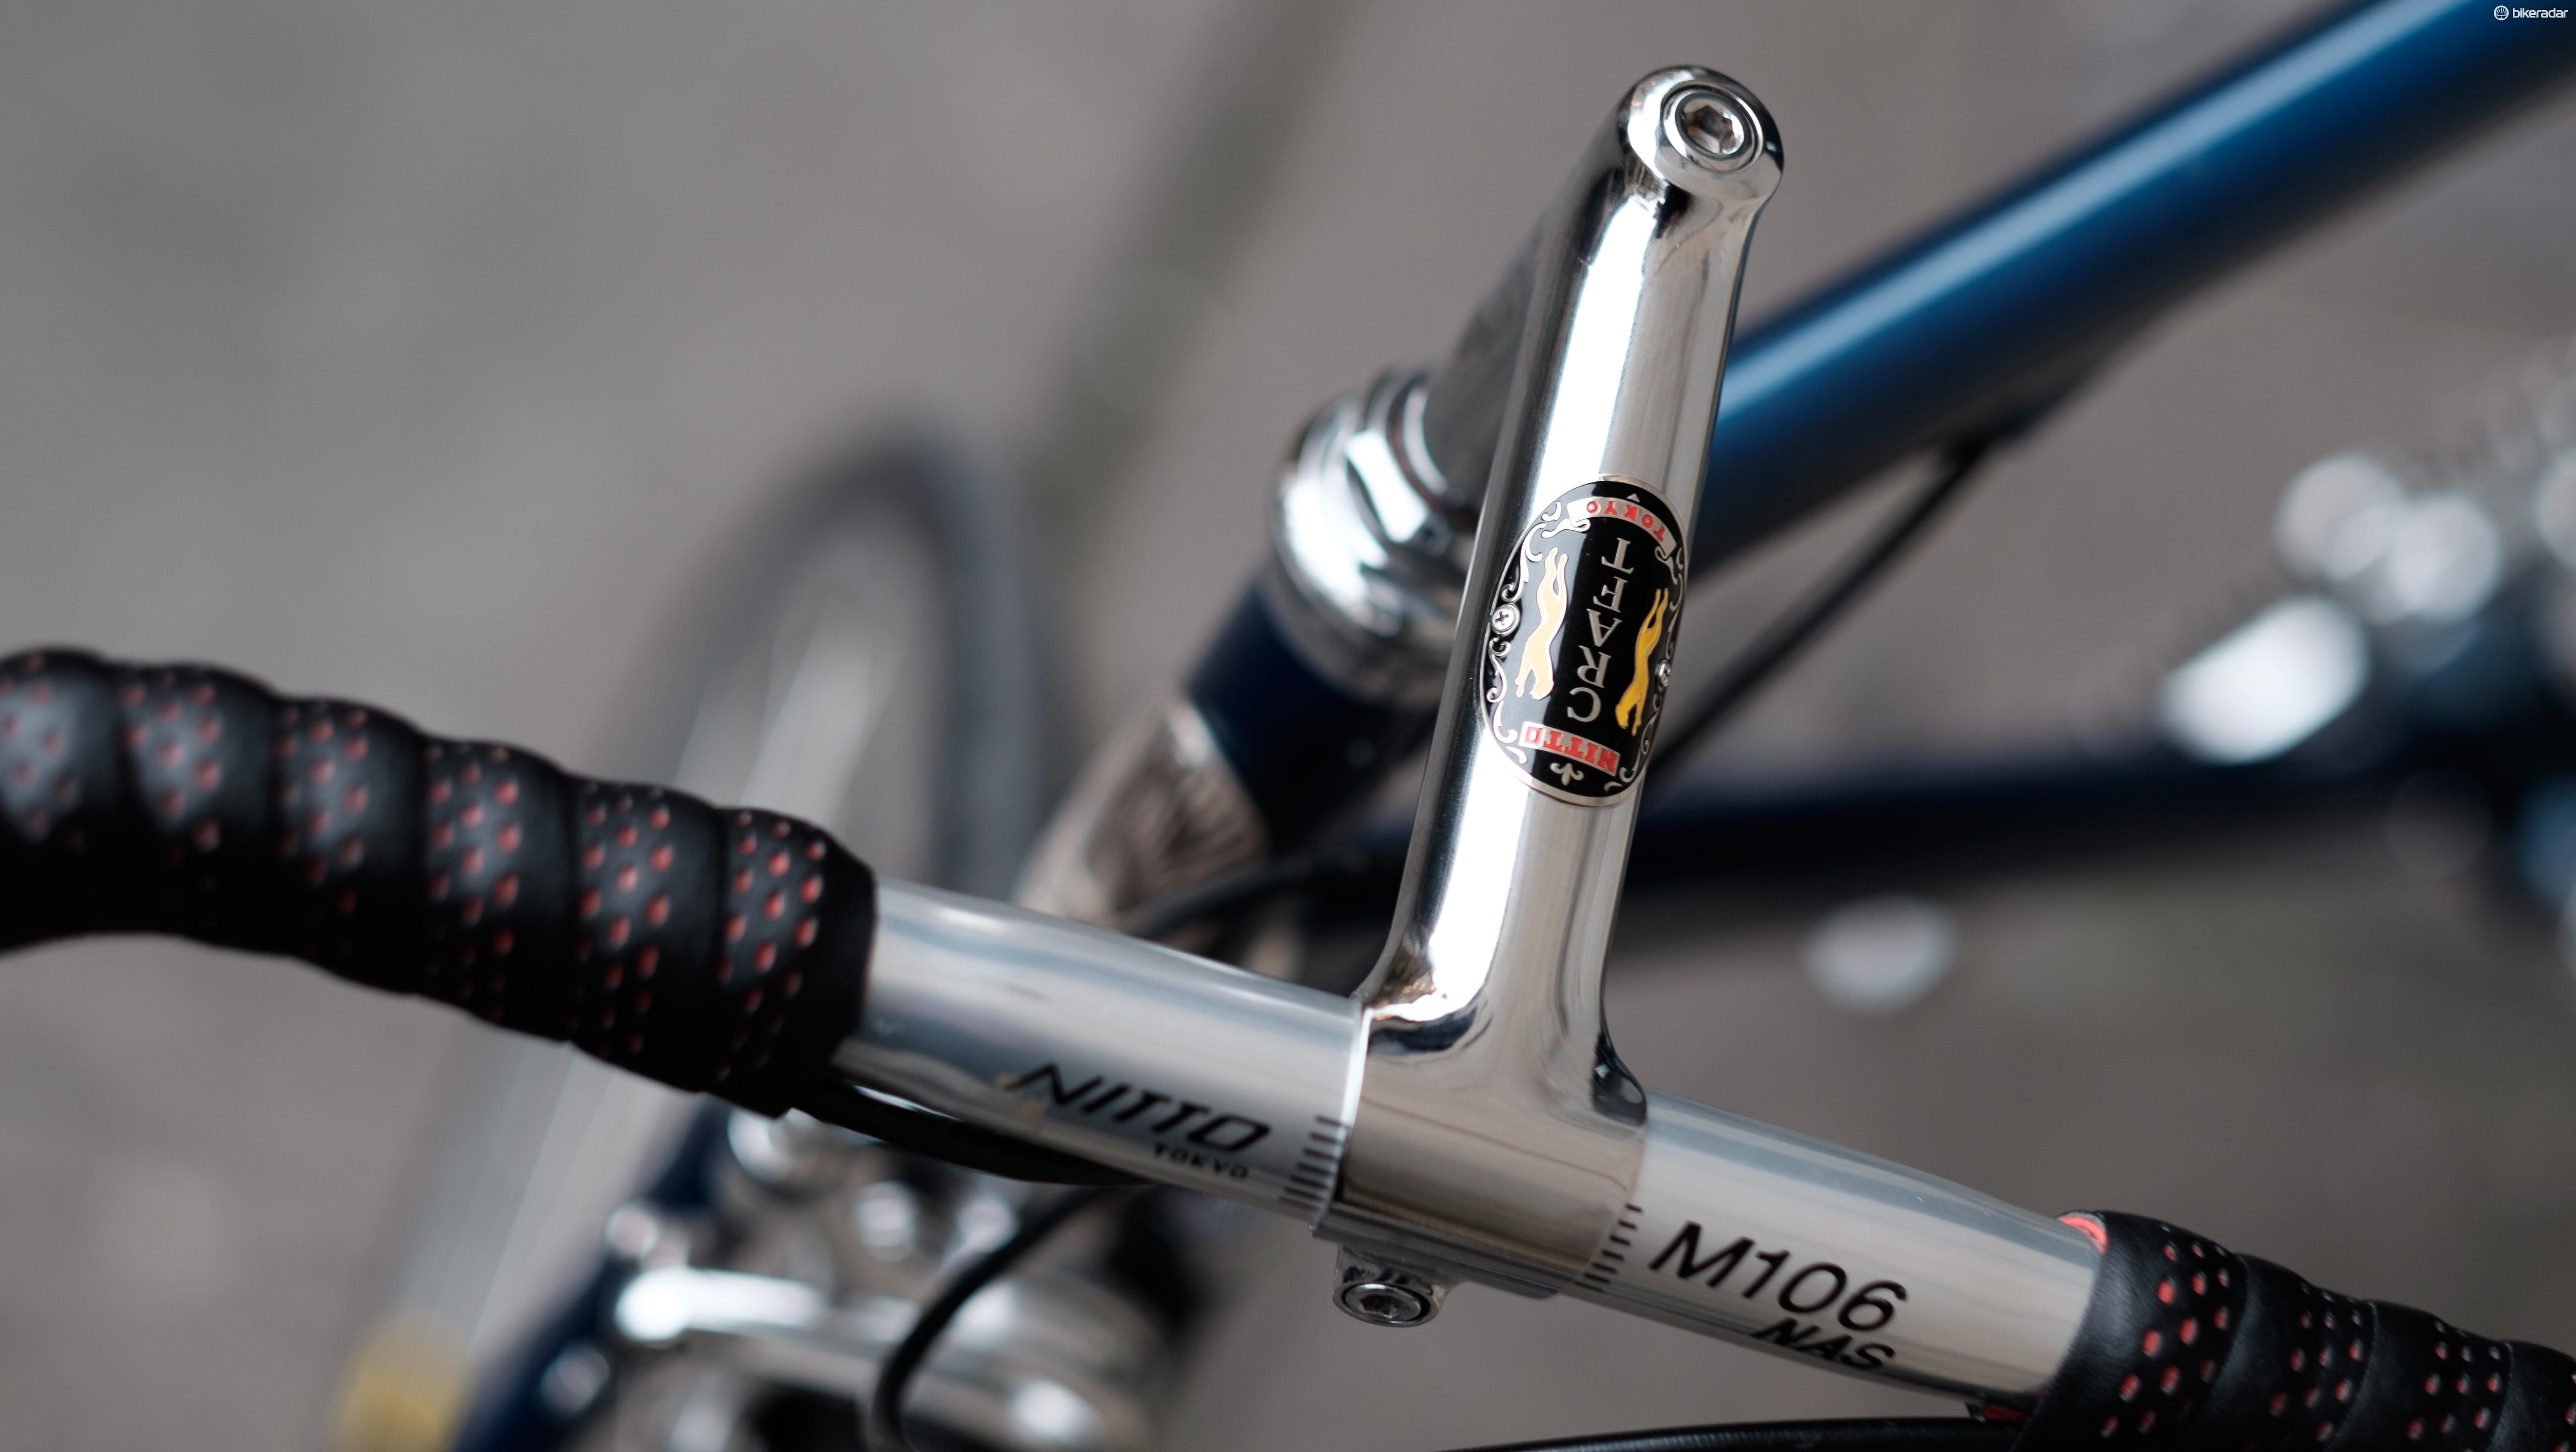 The Nitto Craft stem is as nice as they come